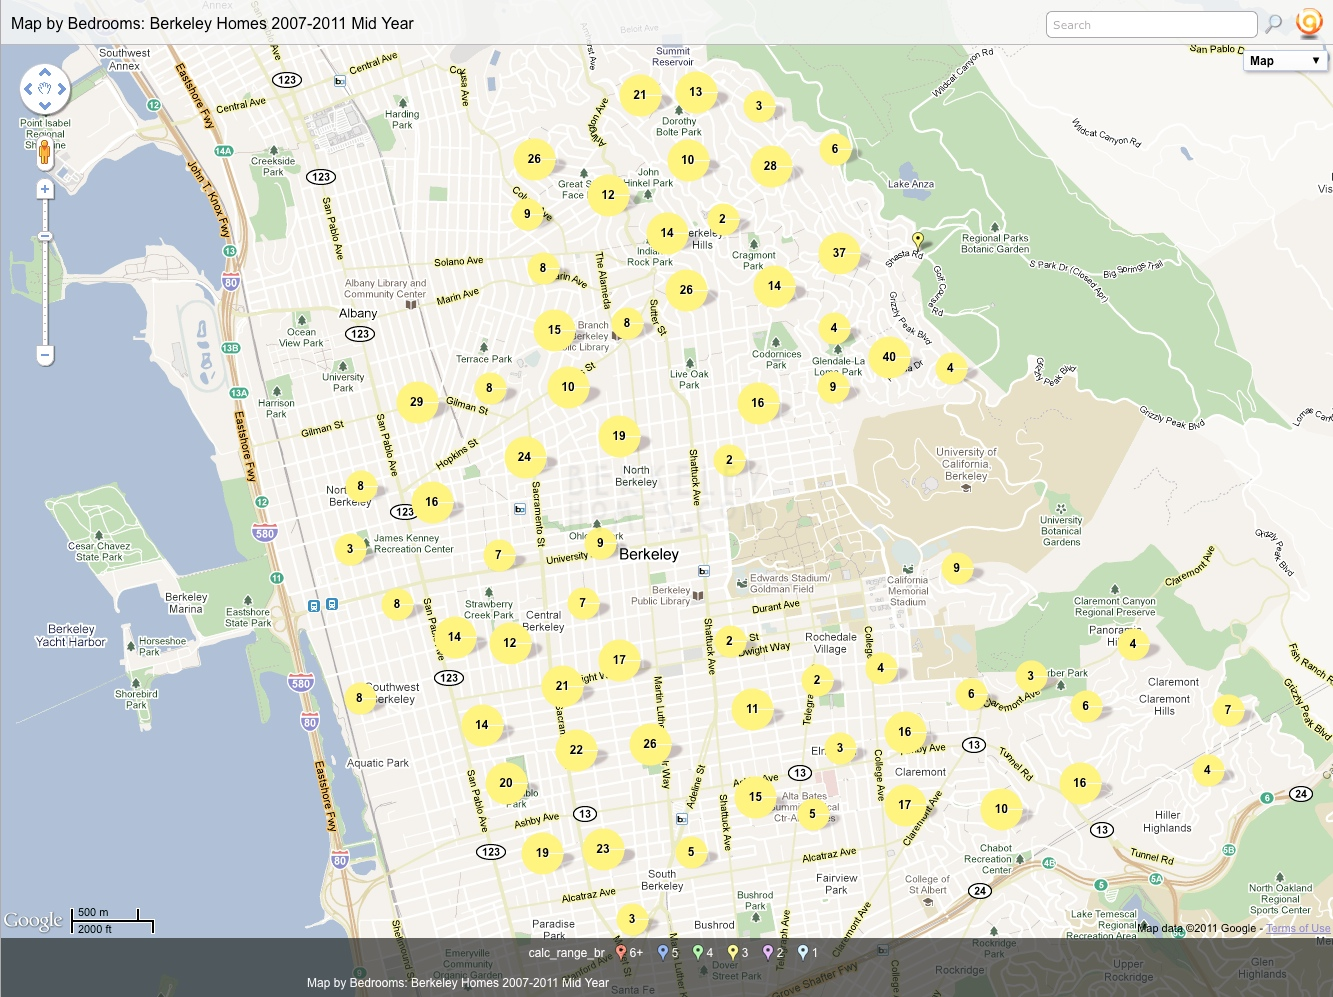 map-berkeley-mls-research-2007-2011-01-06-single-family-home-bedrooms-map-3-br-only